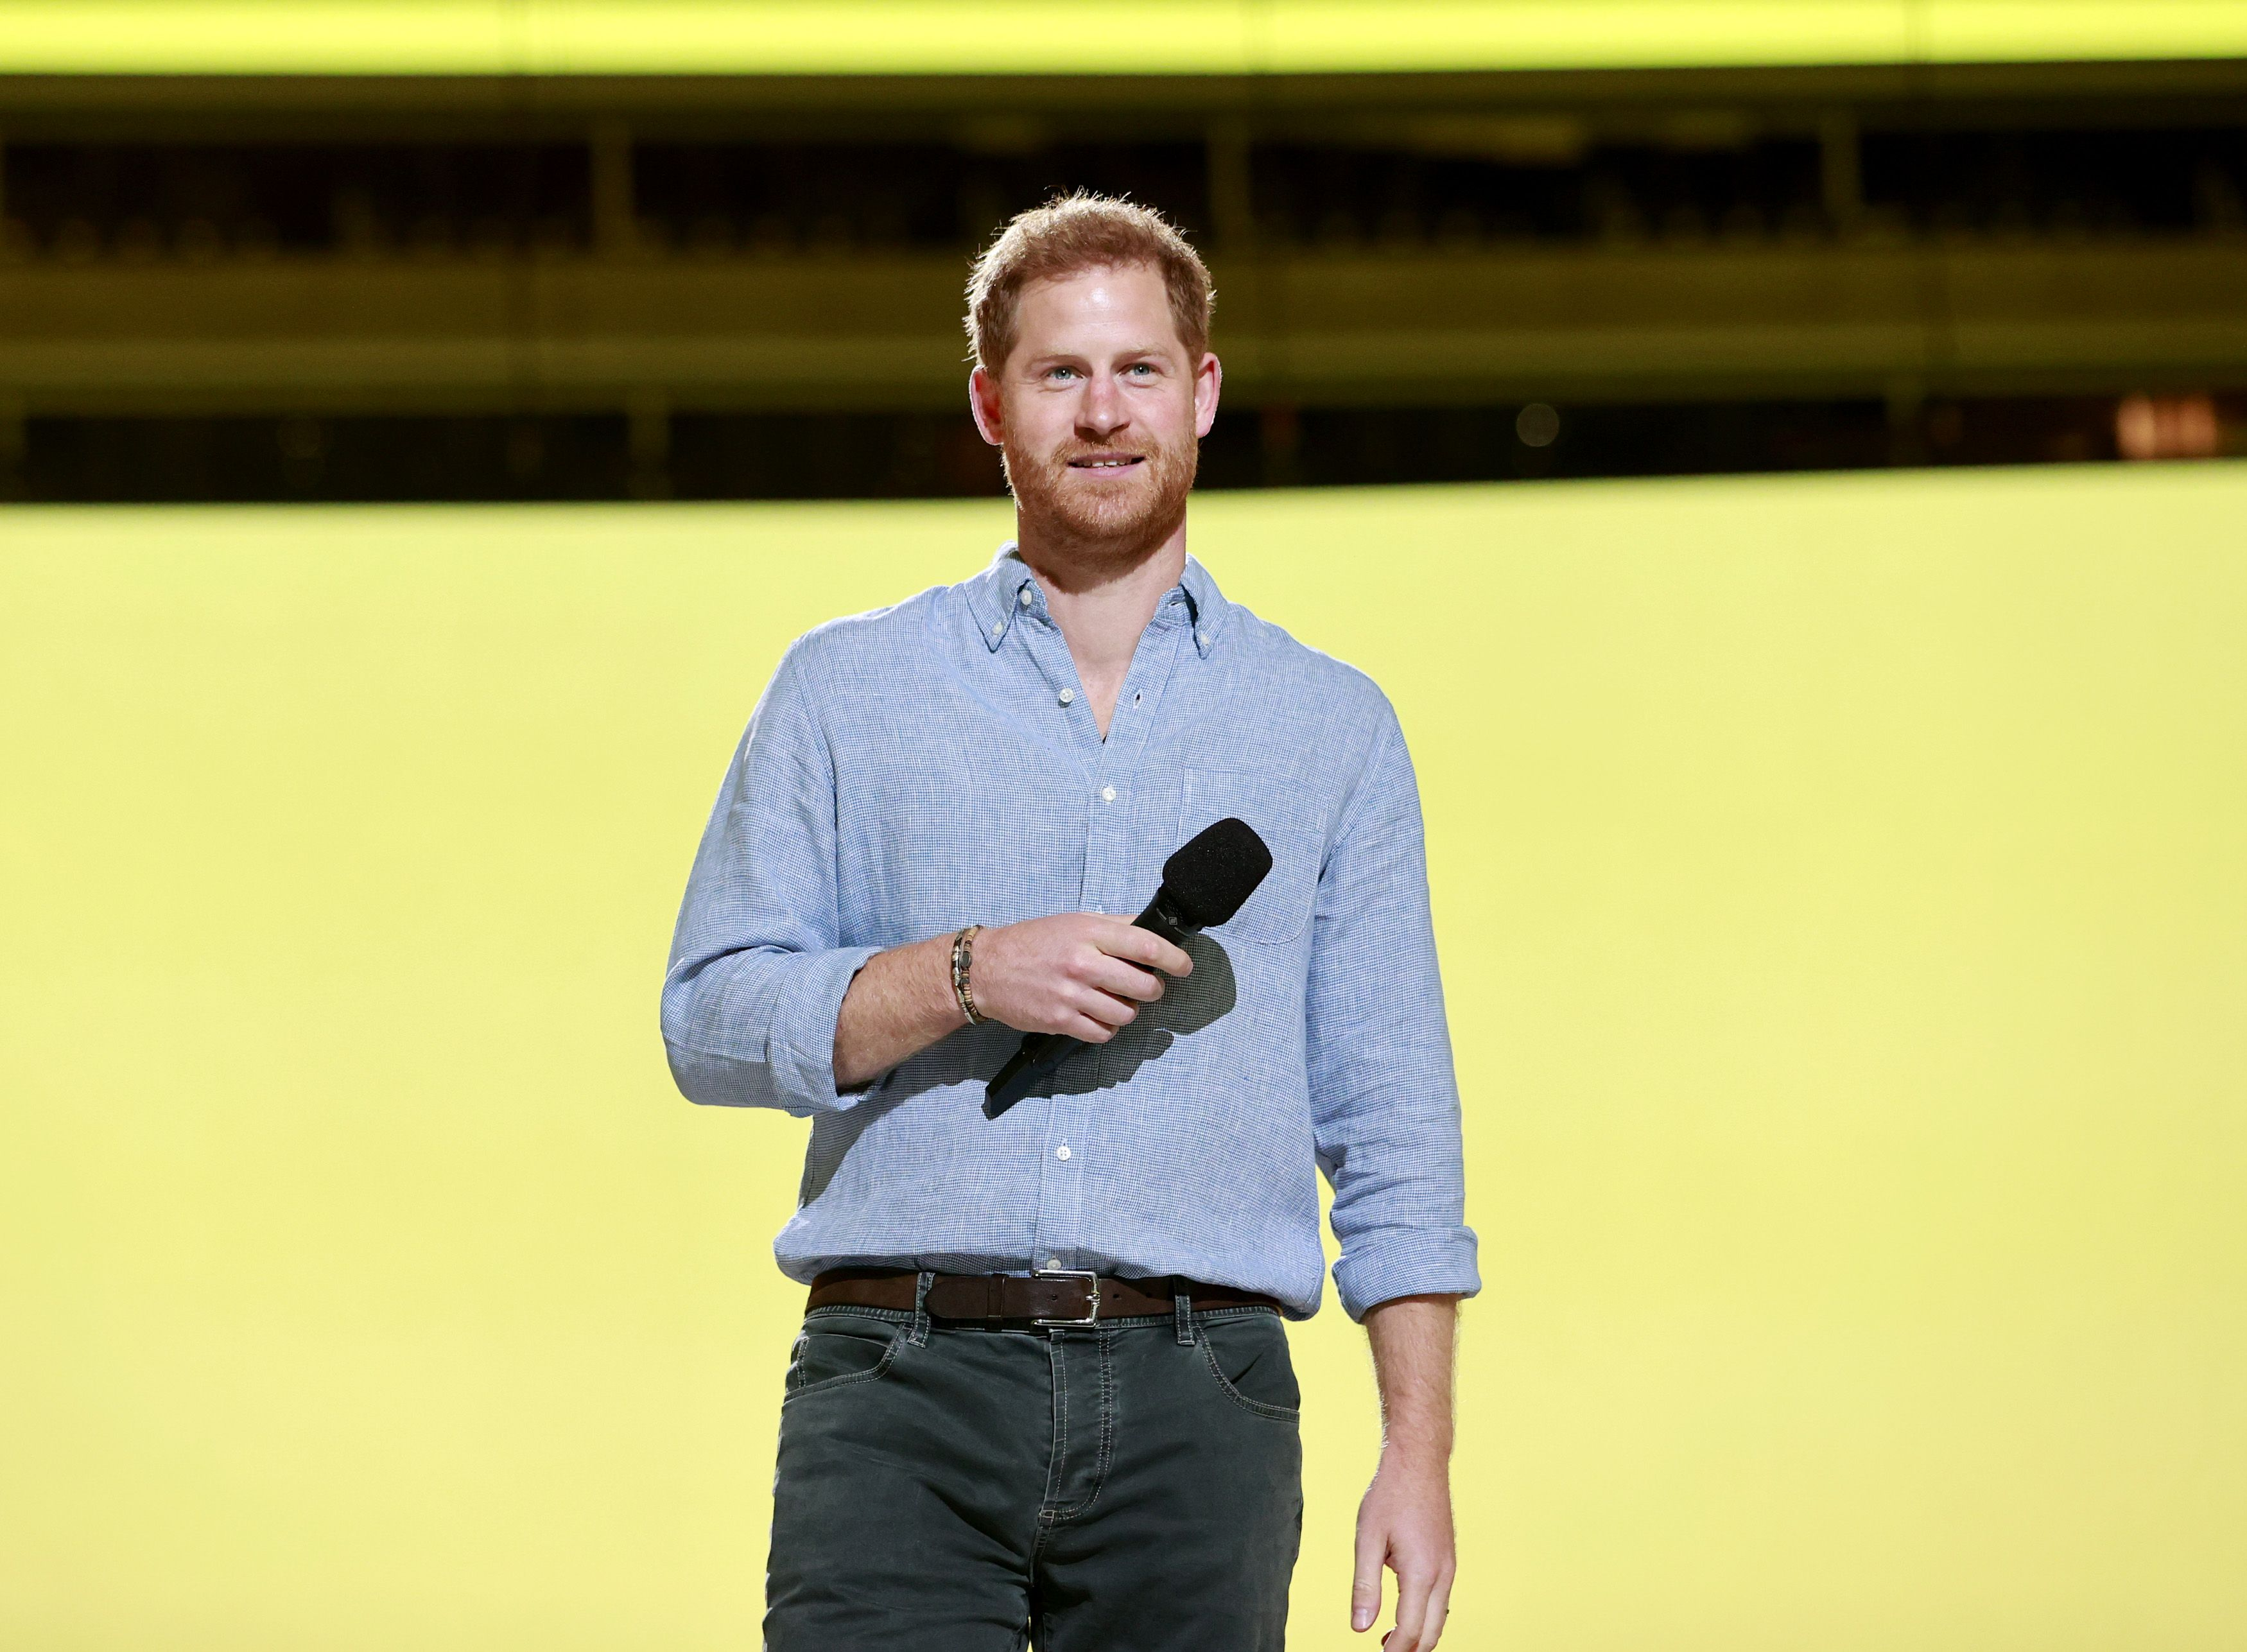 Some People Think Prince Harry Speaks With a Slight American Accent Now